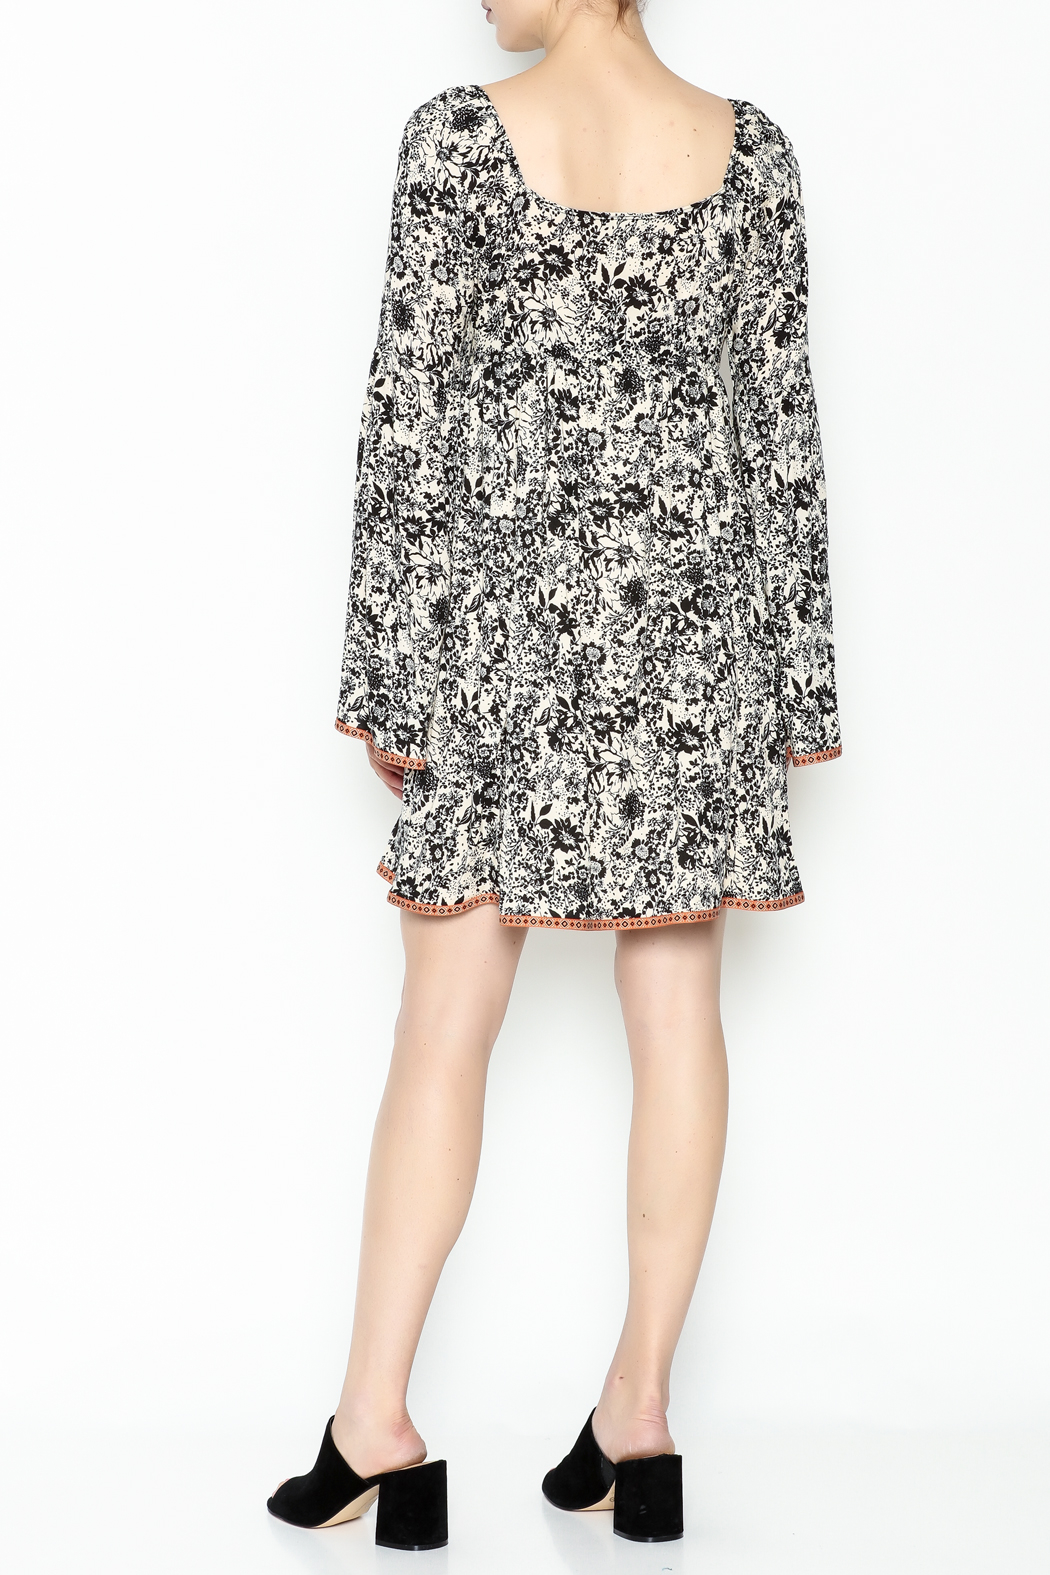 Ces Femme Floral Flare Dress - Back Cropped Image